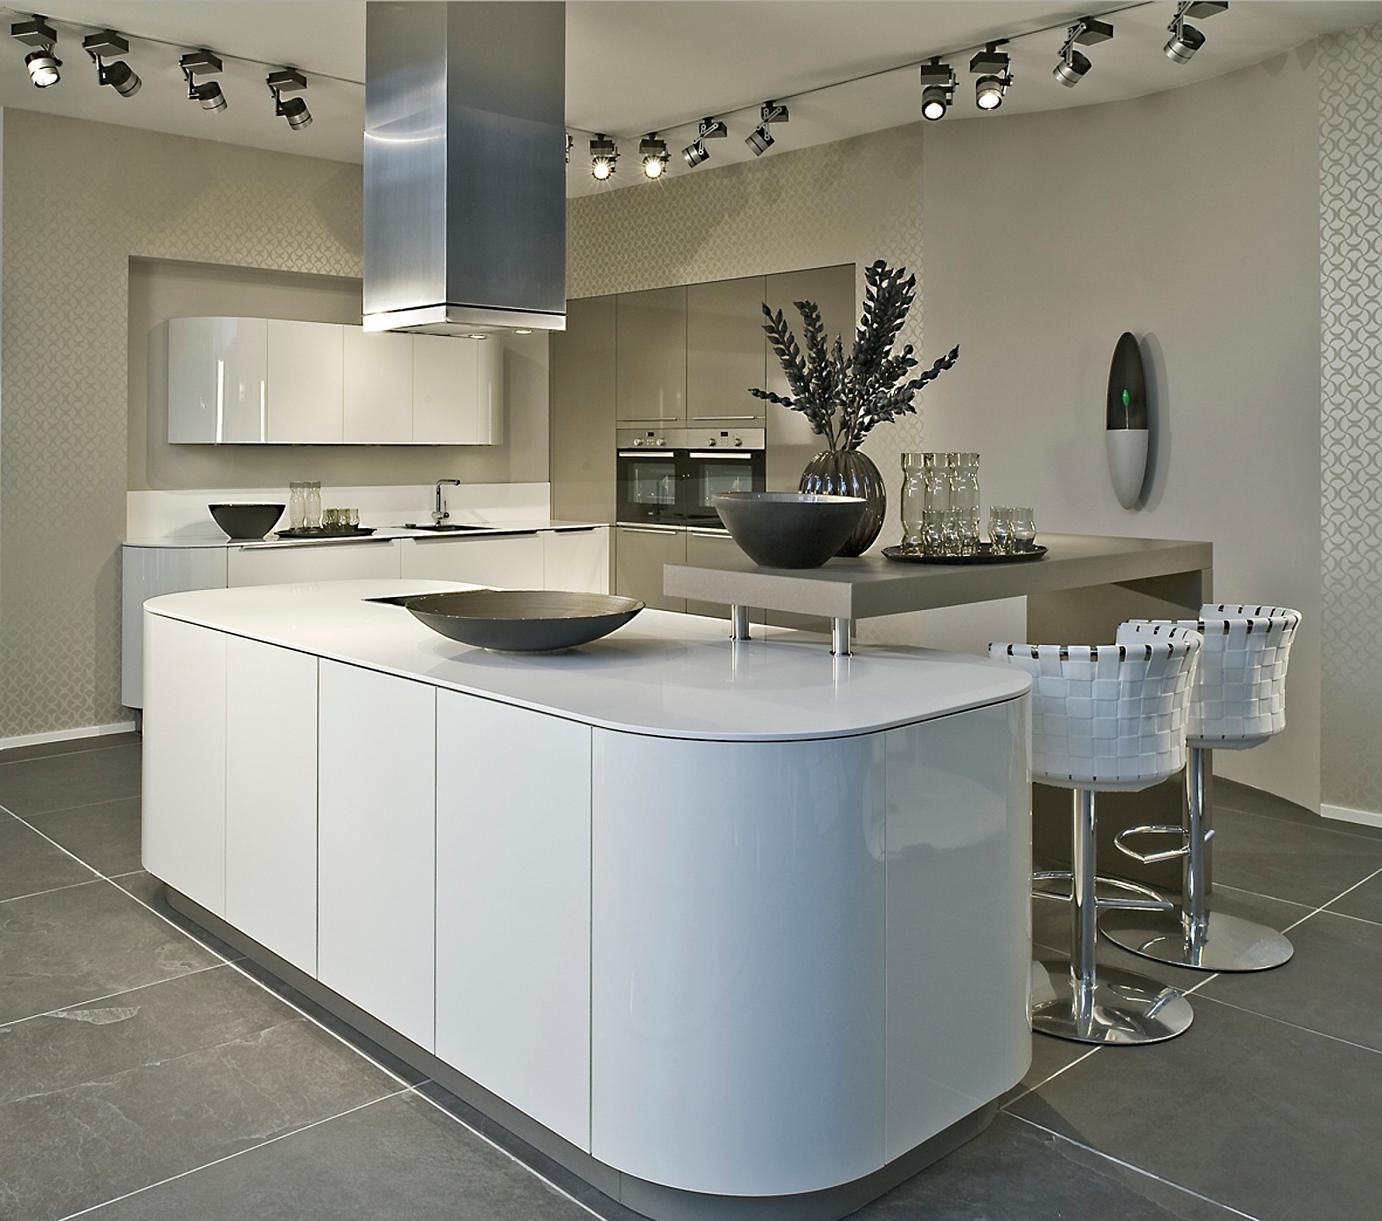 Fitted Kitchen Units Design Specialists: Curved Kitchen Ideas From LWK Kitchens London